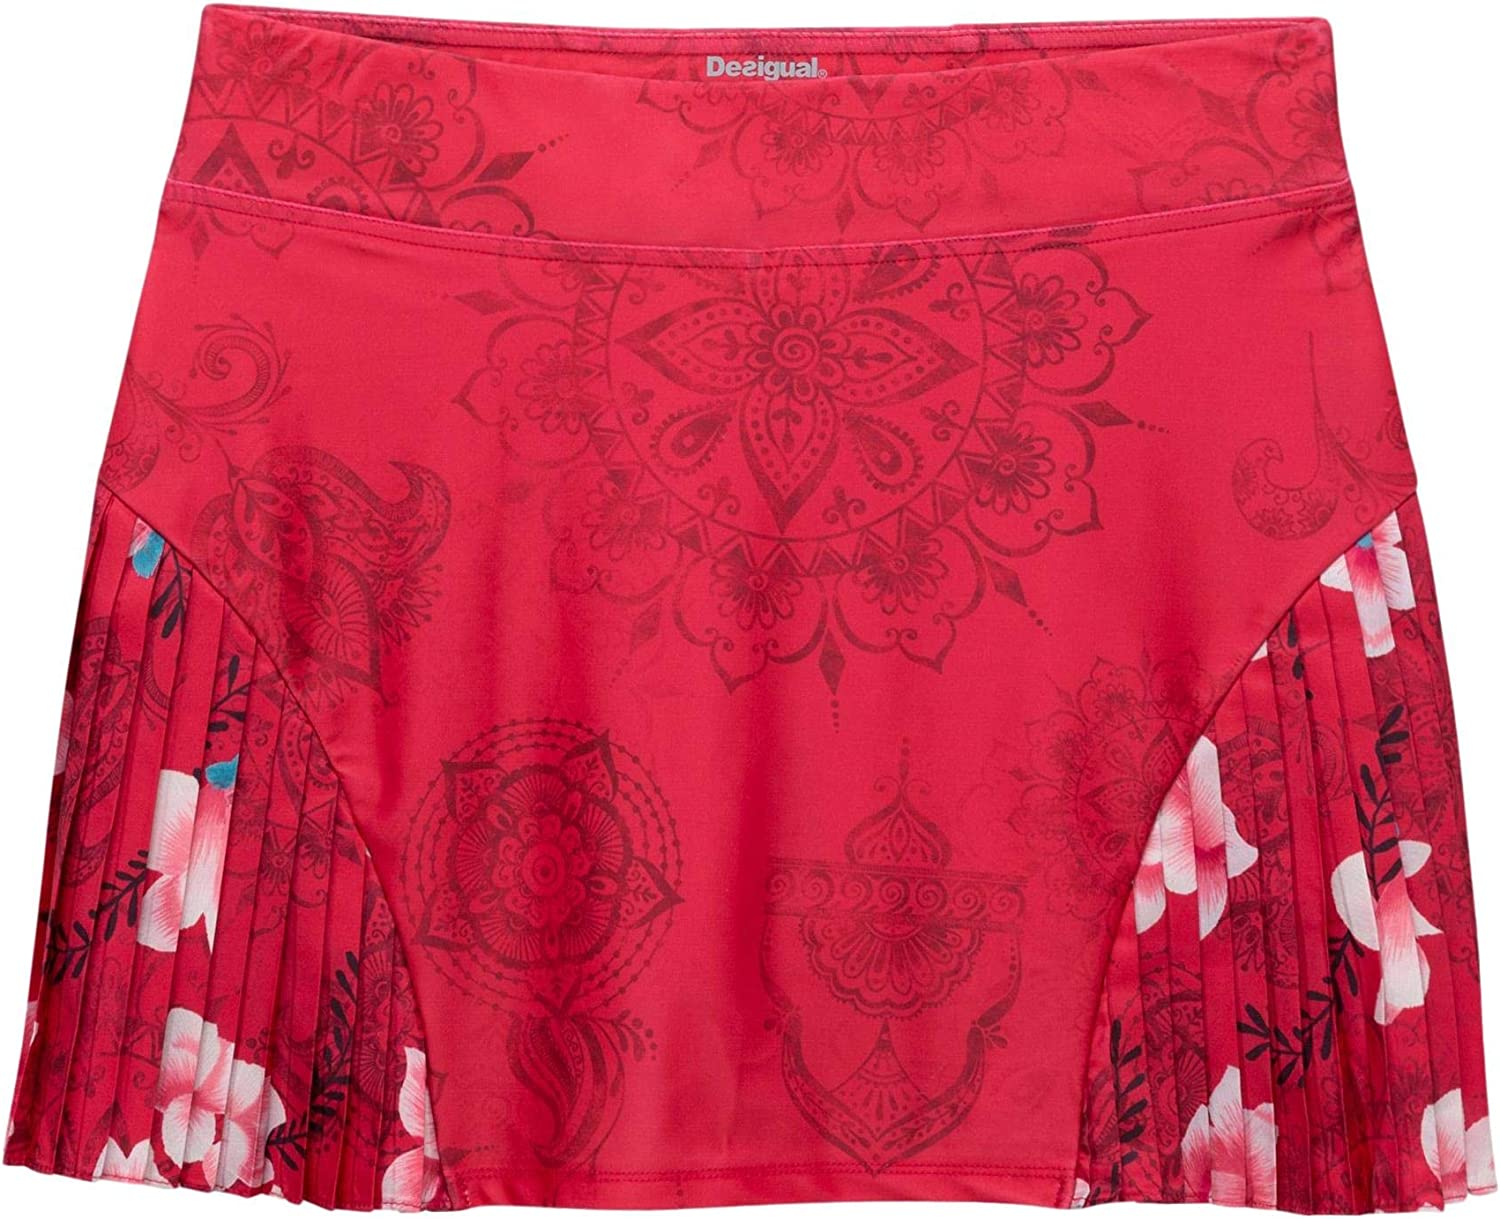 Desigual Falda Padel Hindi Dancer-S,M,L: Amazon.es: Deportes y ...